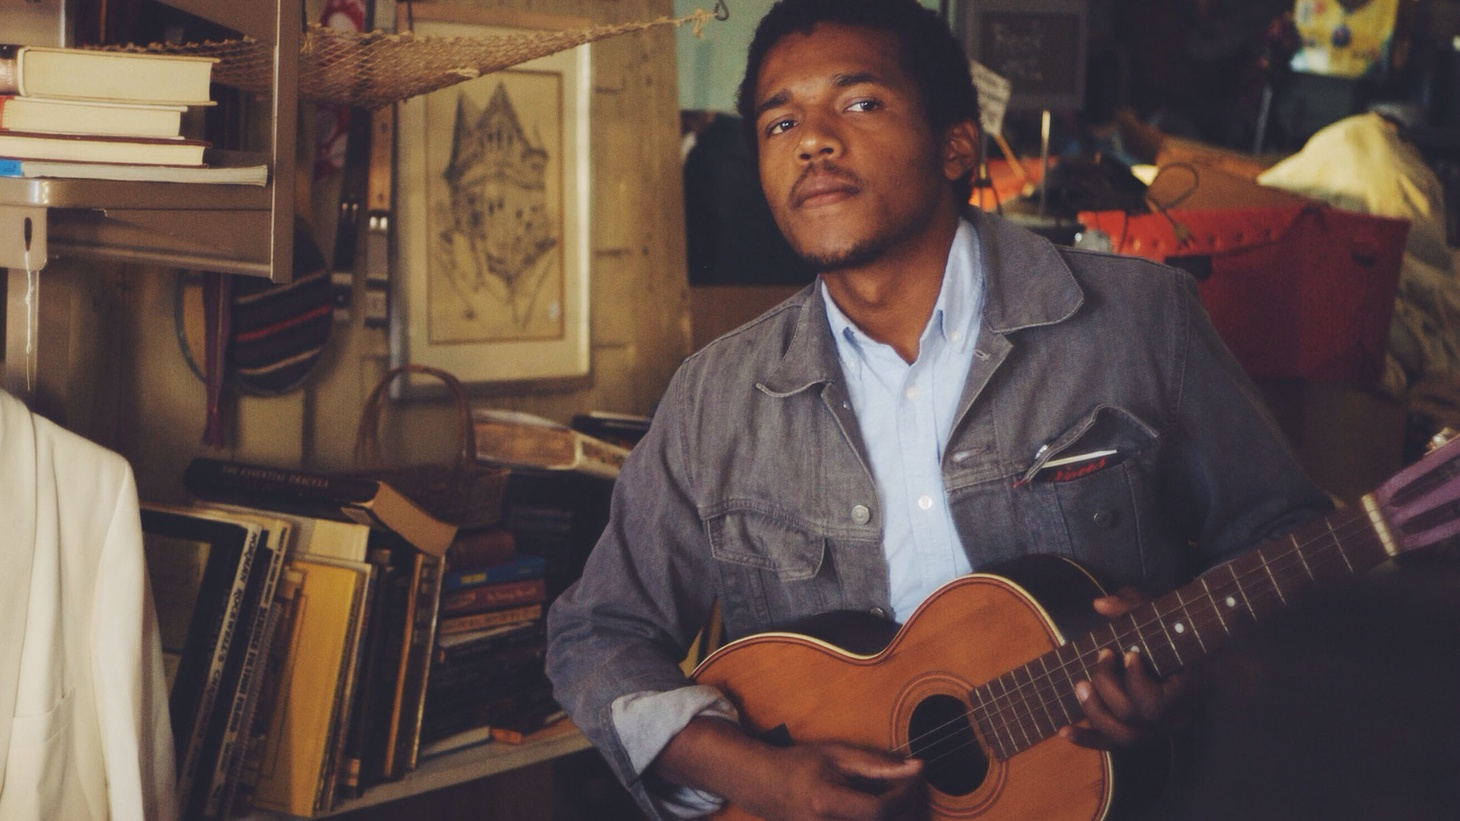 Flashing both the raw talent of a recruit and the acumen of a much older musician, Booker's self-titled debut shows off both his youth and his grasp of past musical forms.